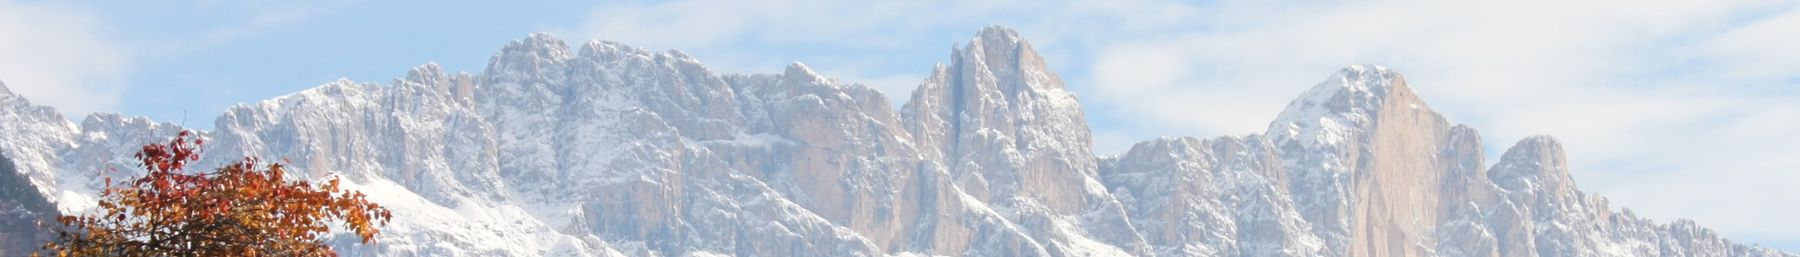 South Tyrol montains banner.jpg